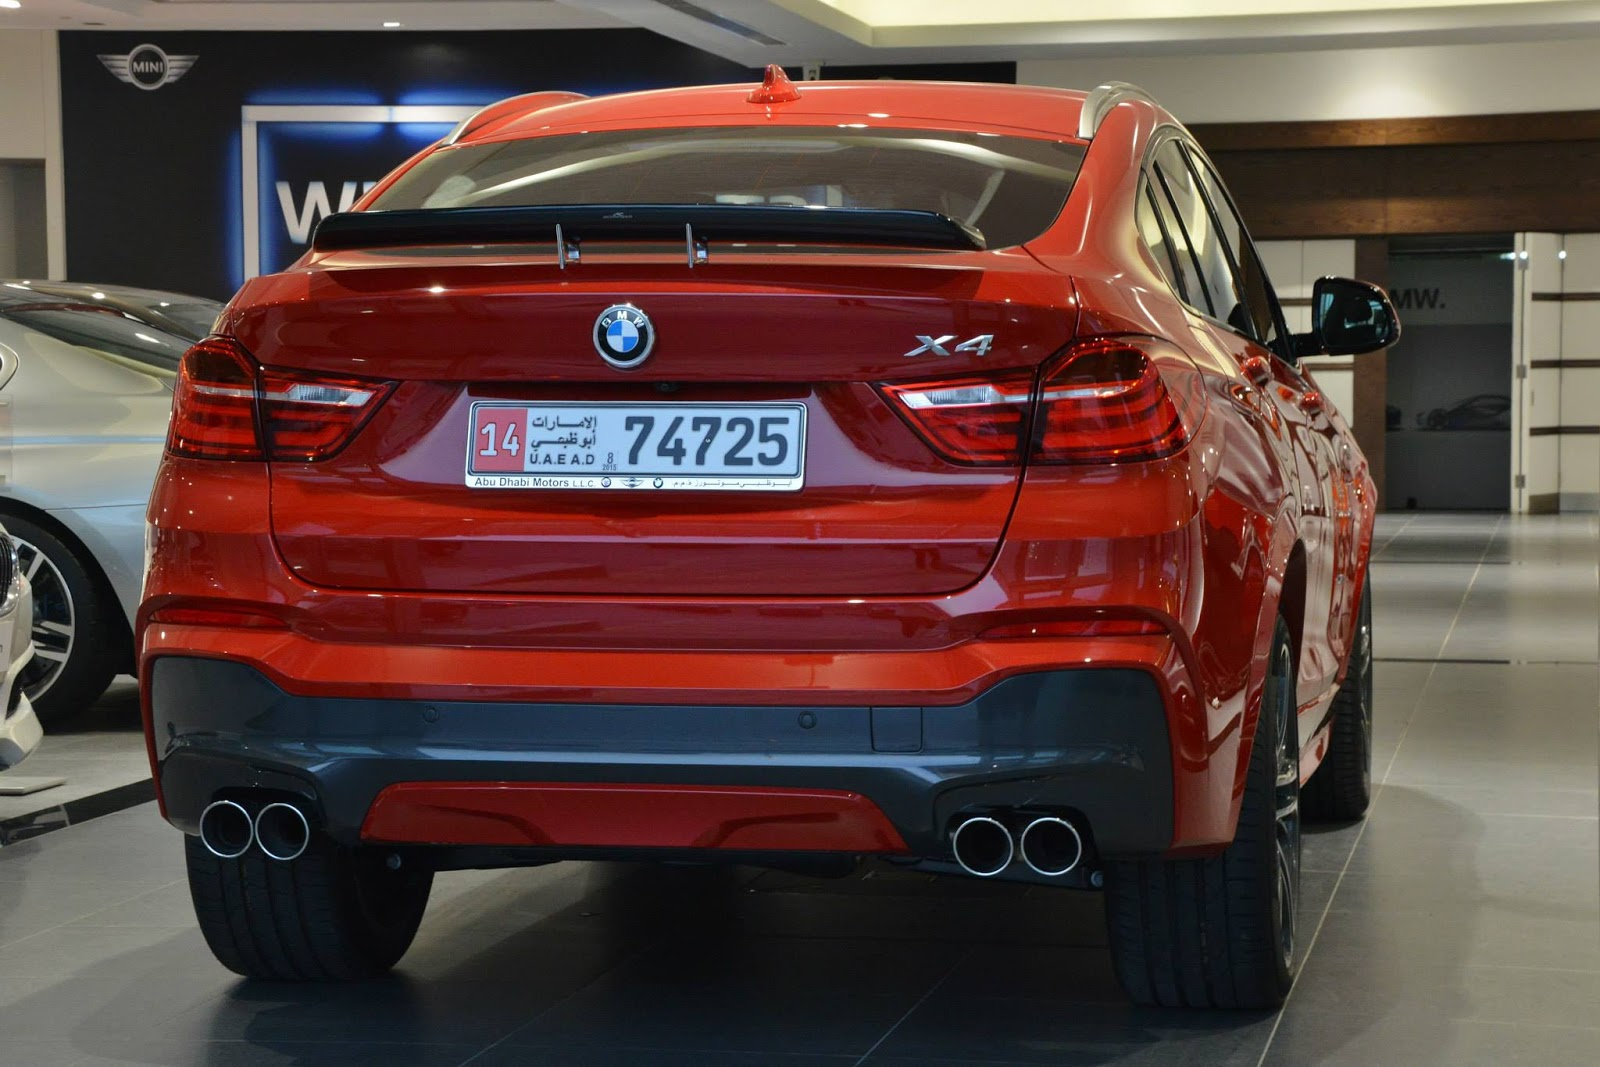 Bmw X4 M Sports In Melbourne Red And Carbon Black Bmw X4